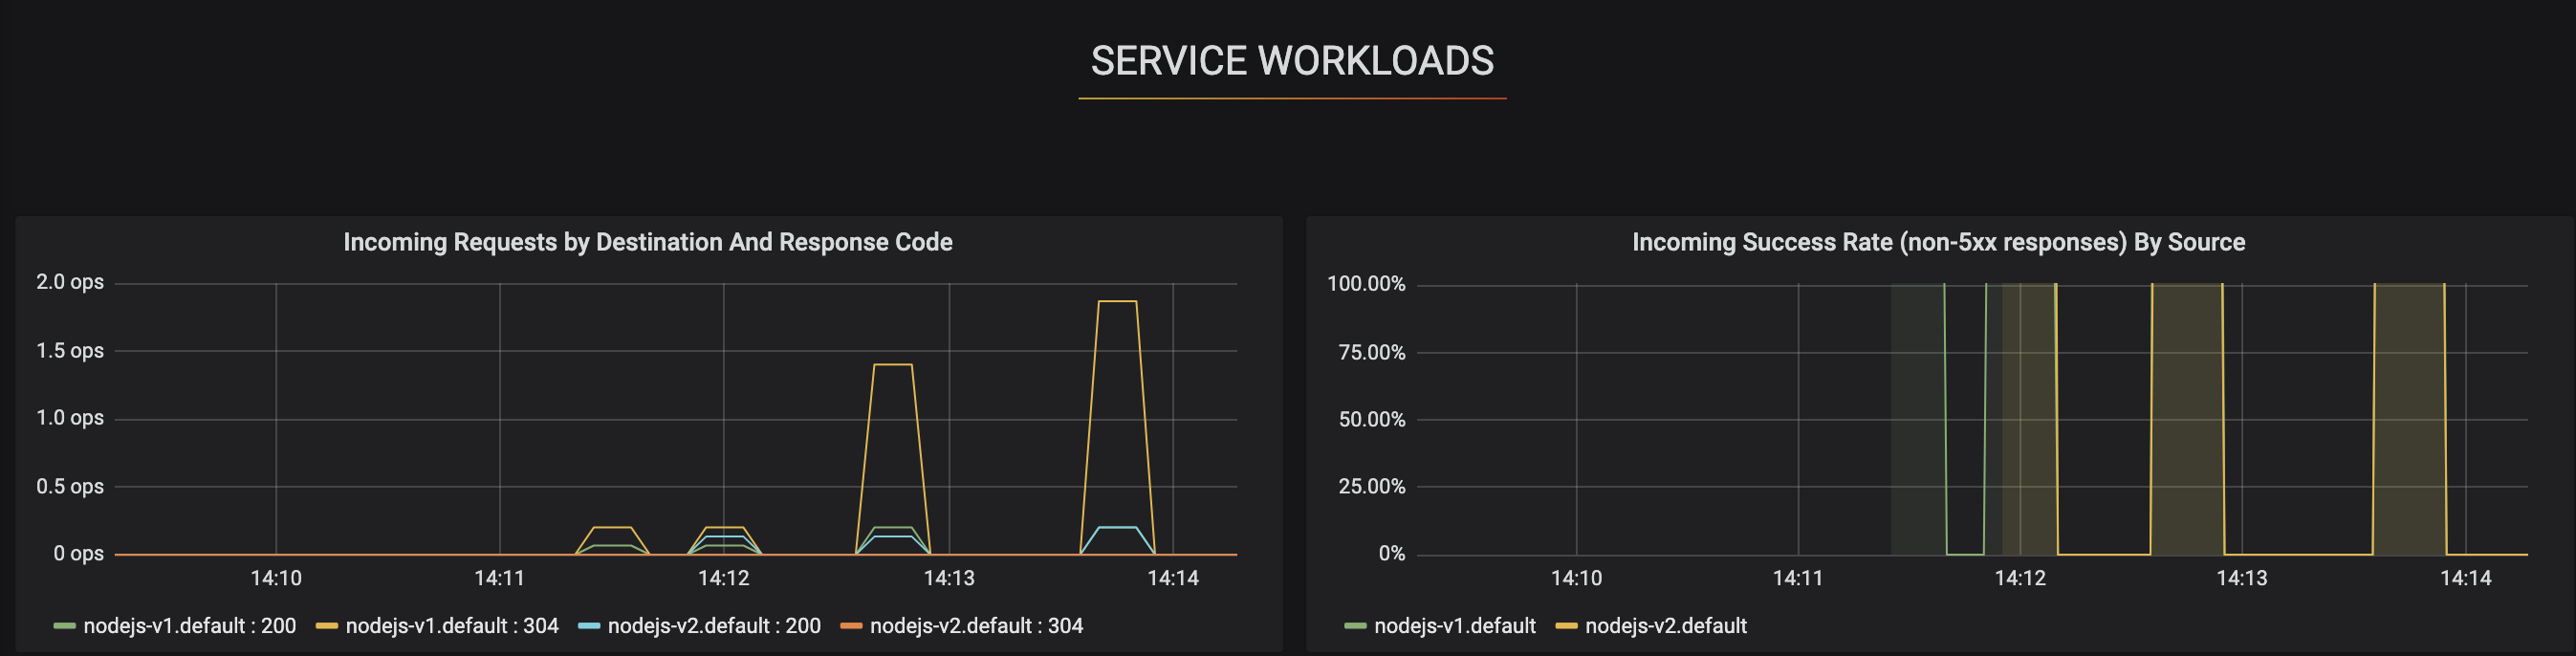 Service Workloads Dashboards